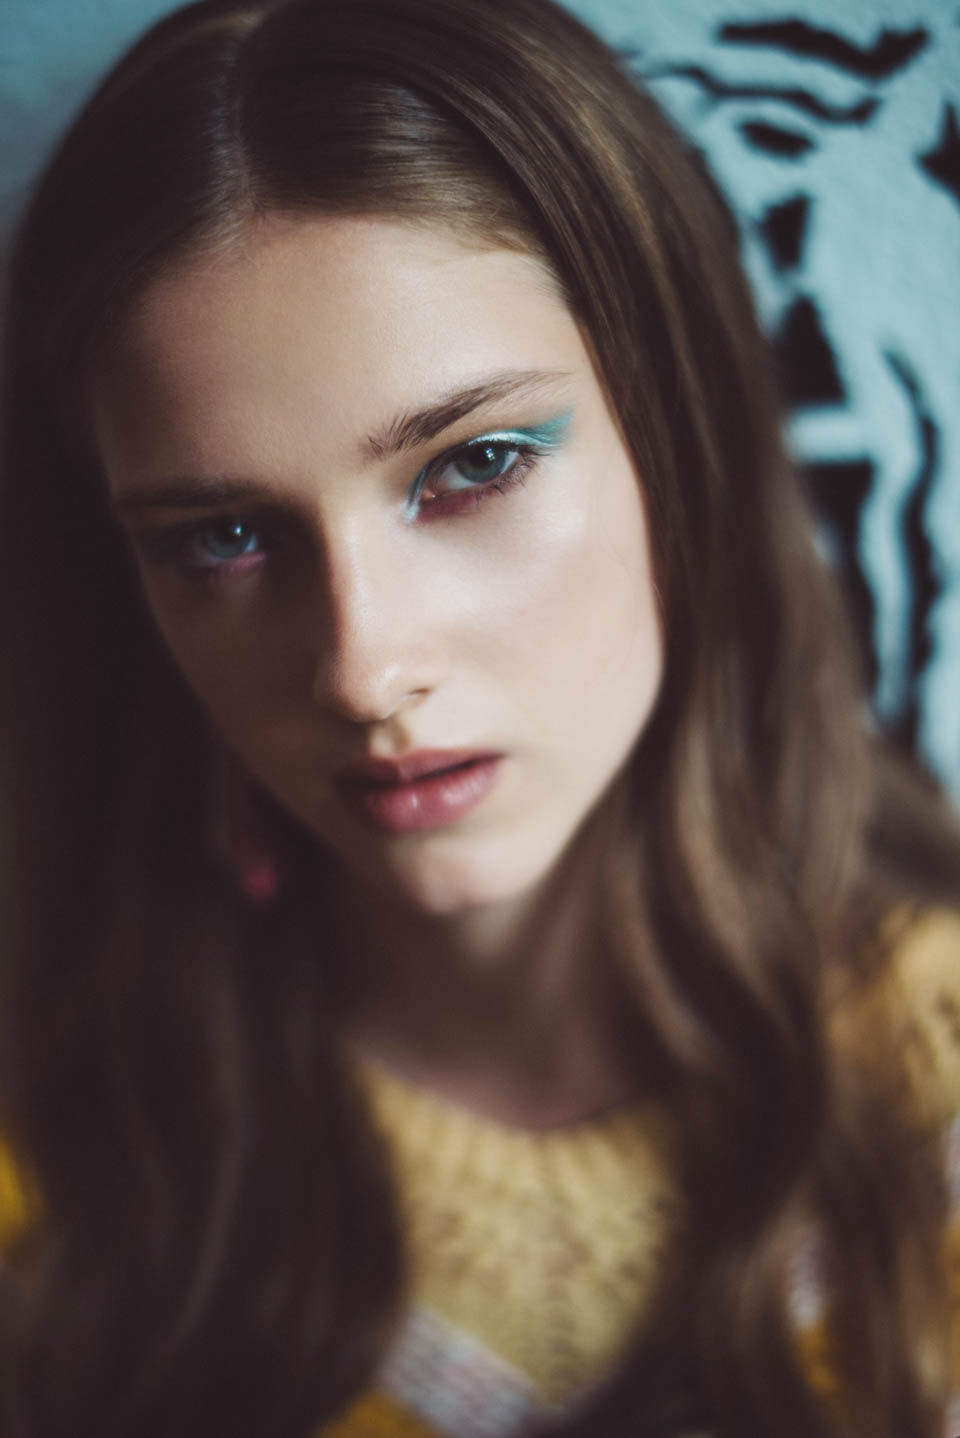 fashion editorial for cake magazine shot in cologne germany by fashion photographer erika astrid_16.jpg